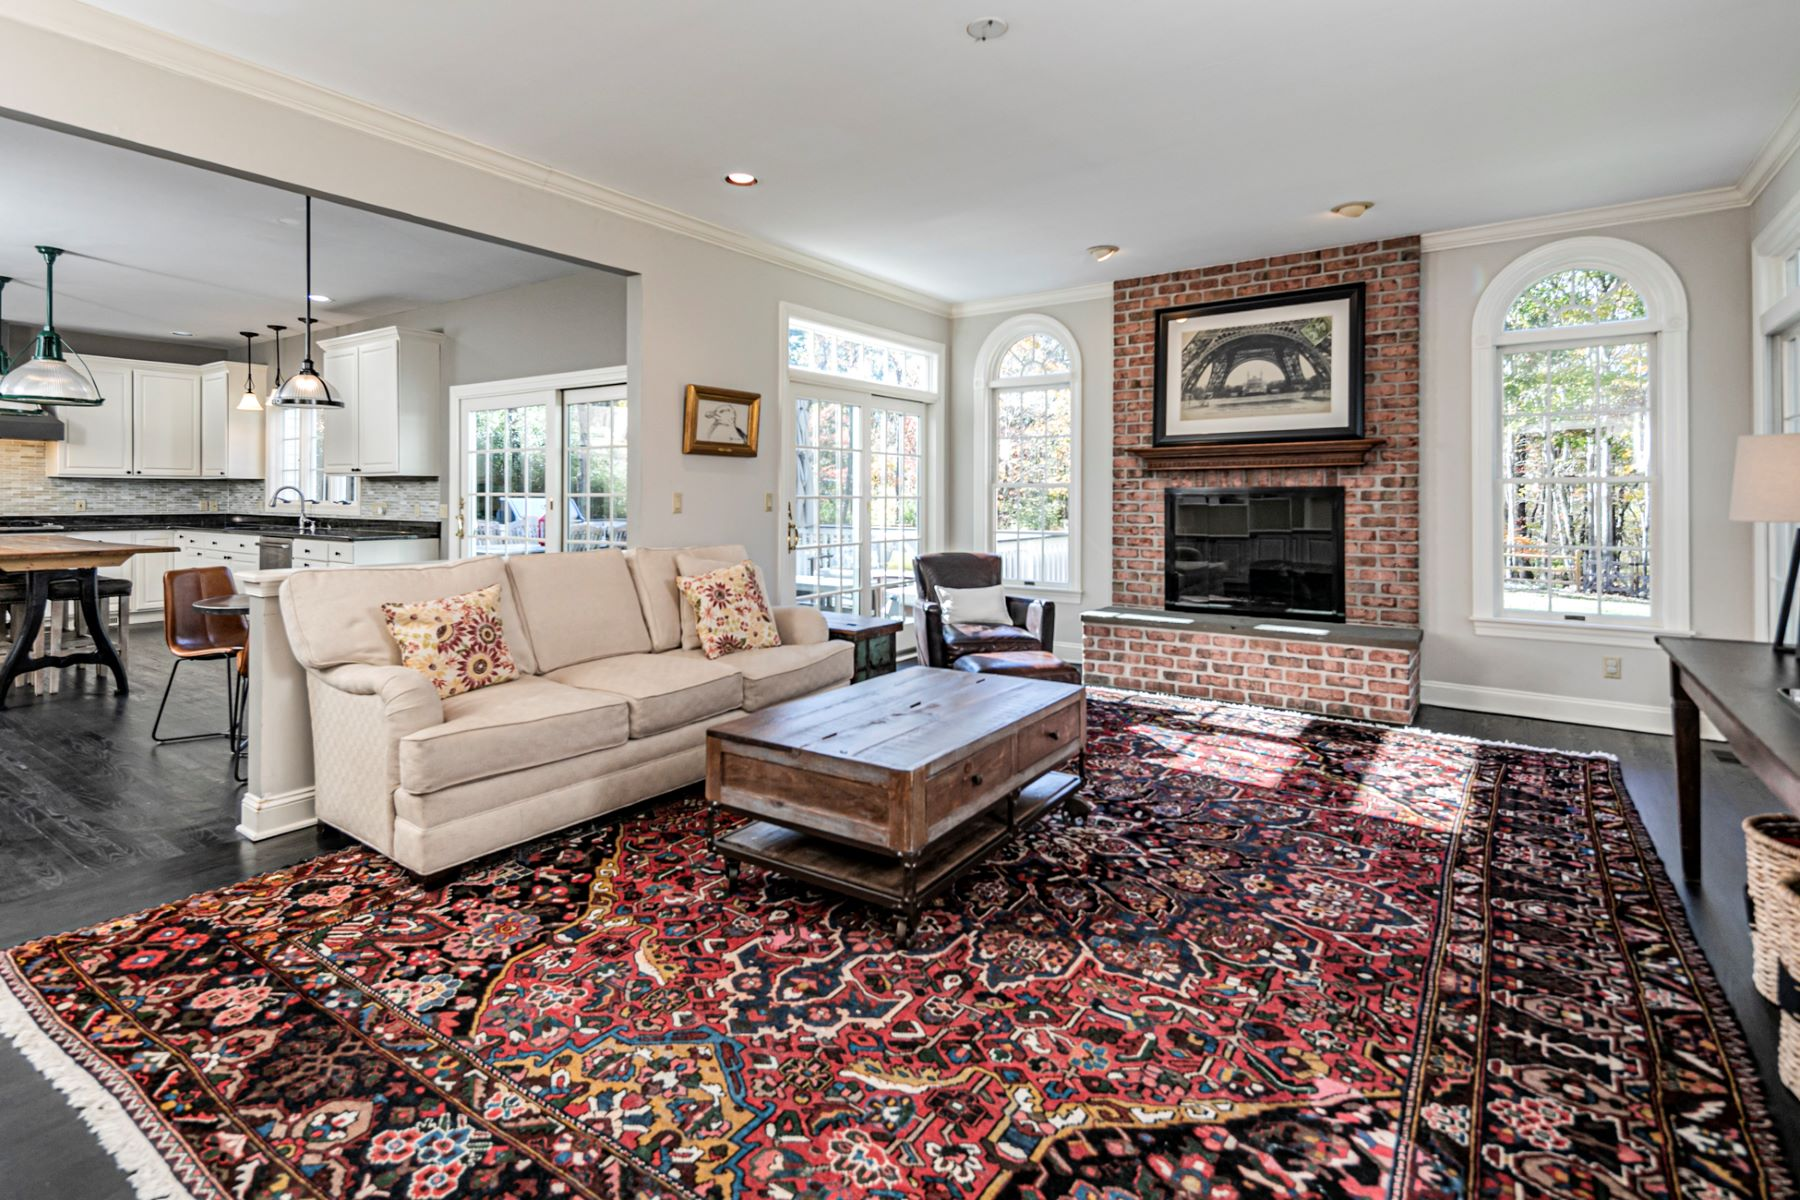 Additional photo for property listing at A Fresh Take On Luxury Living 2 Woodlawn Lane, Pennington, New Jersey 08534 United States